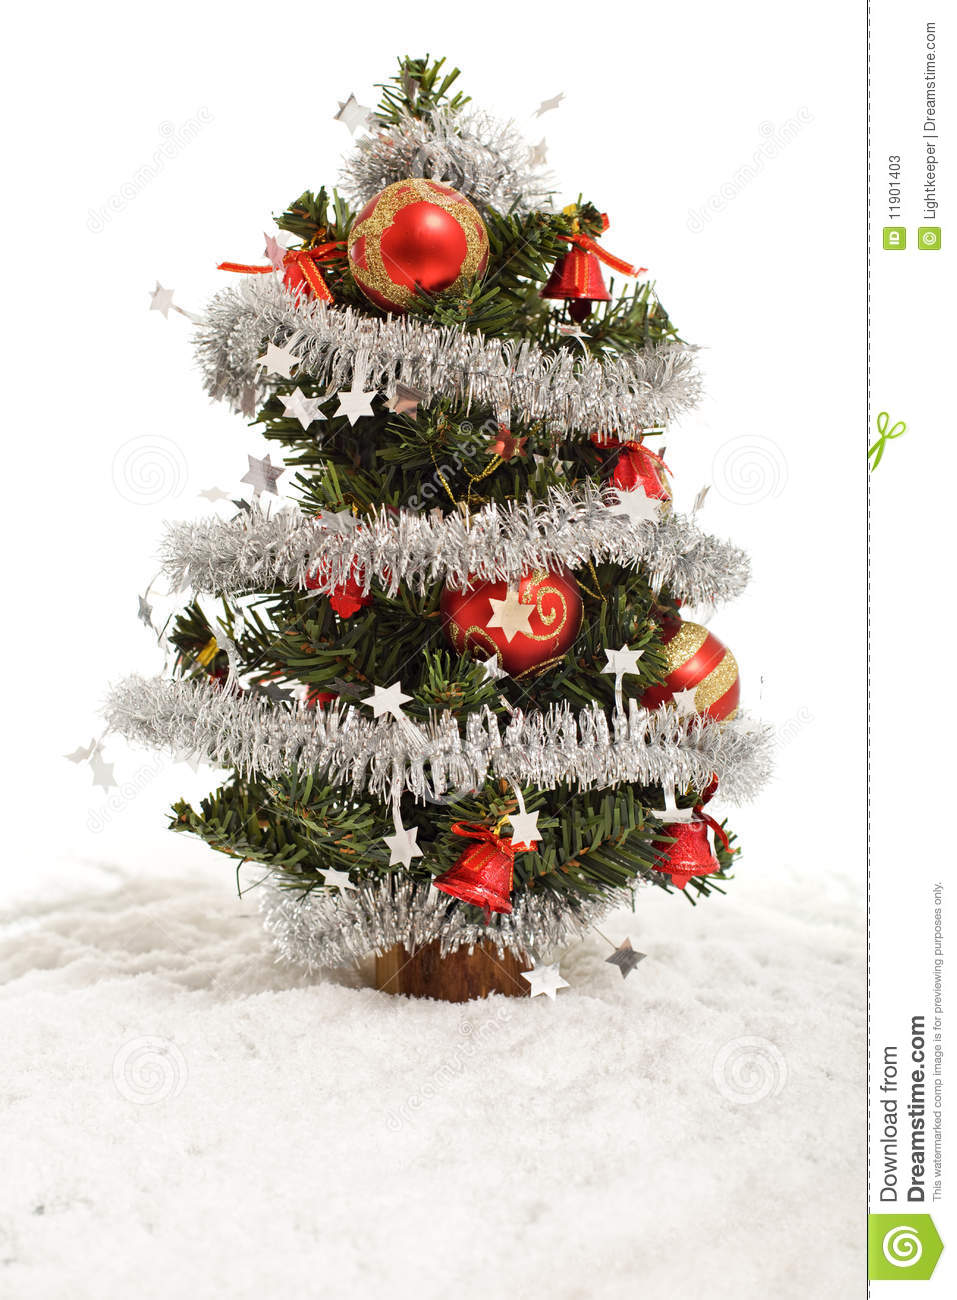 ... stock images of ` Small decorative christmas tree in artificial snow